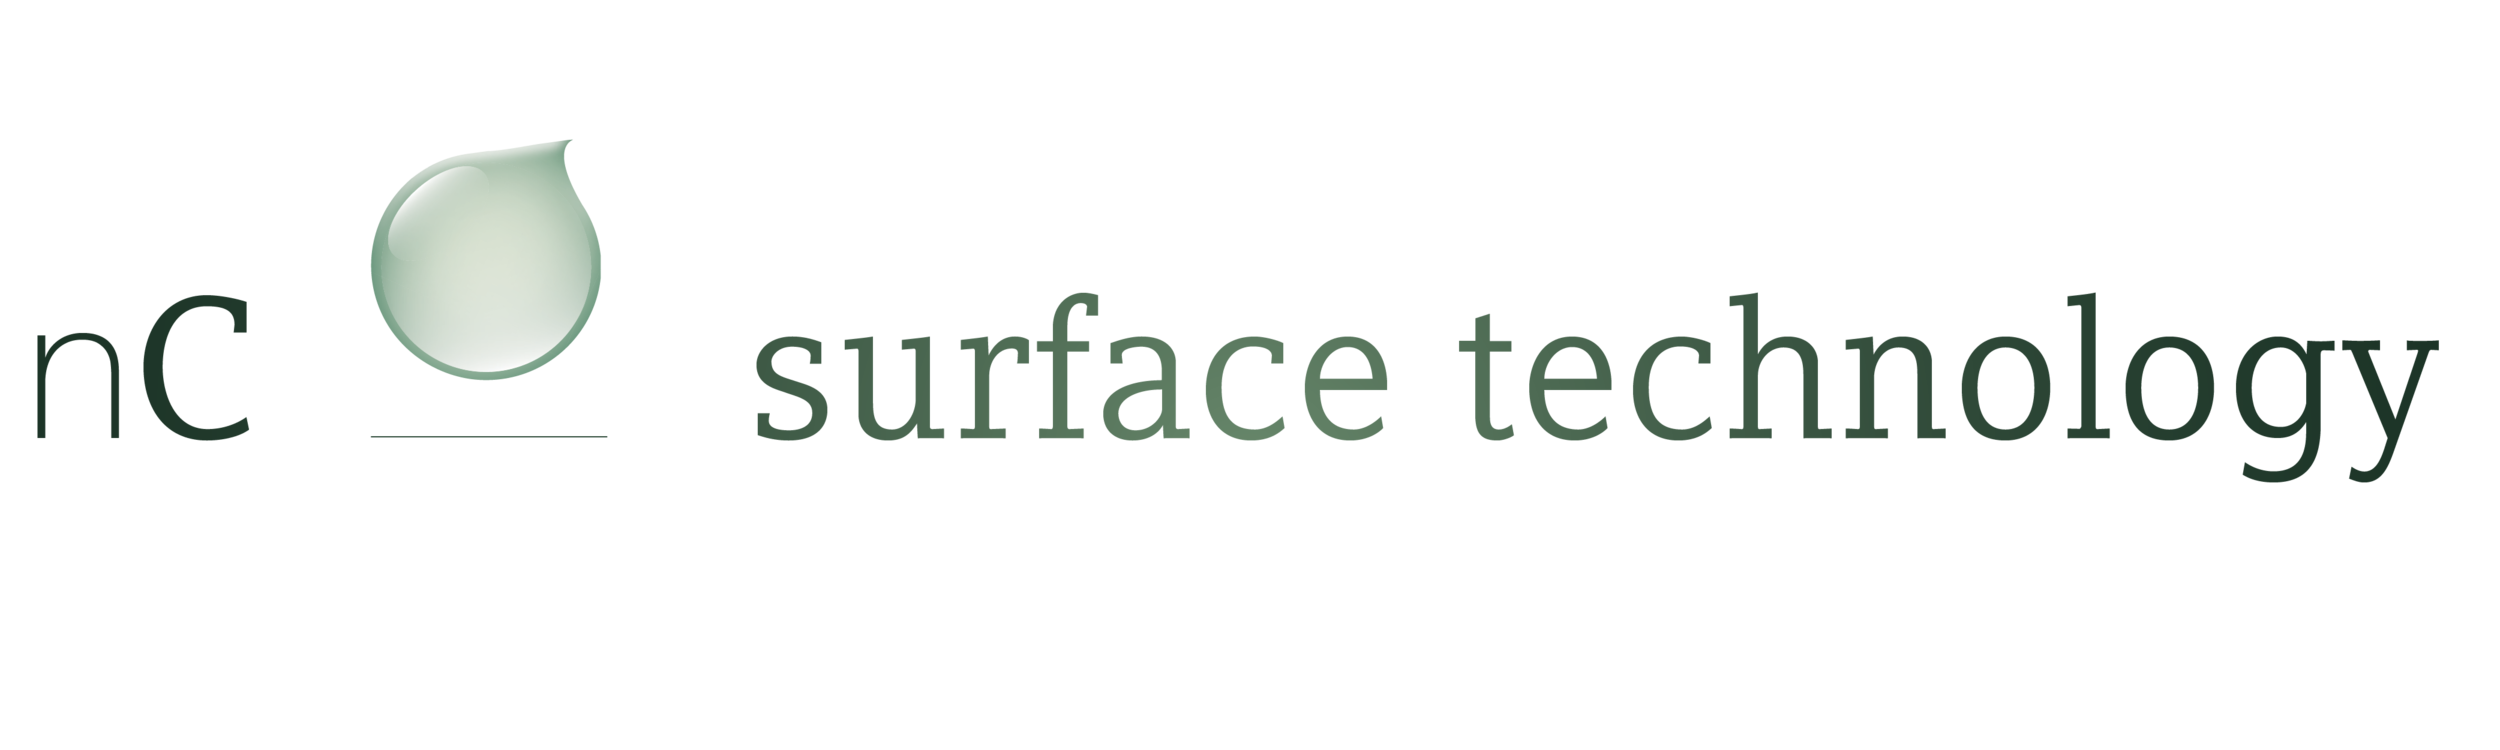 nC surface technology logo.png